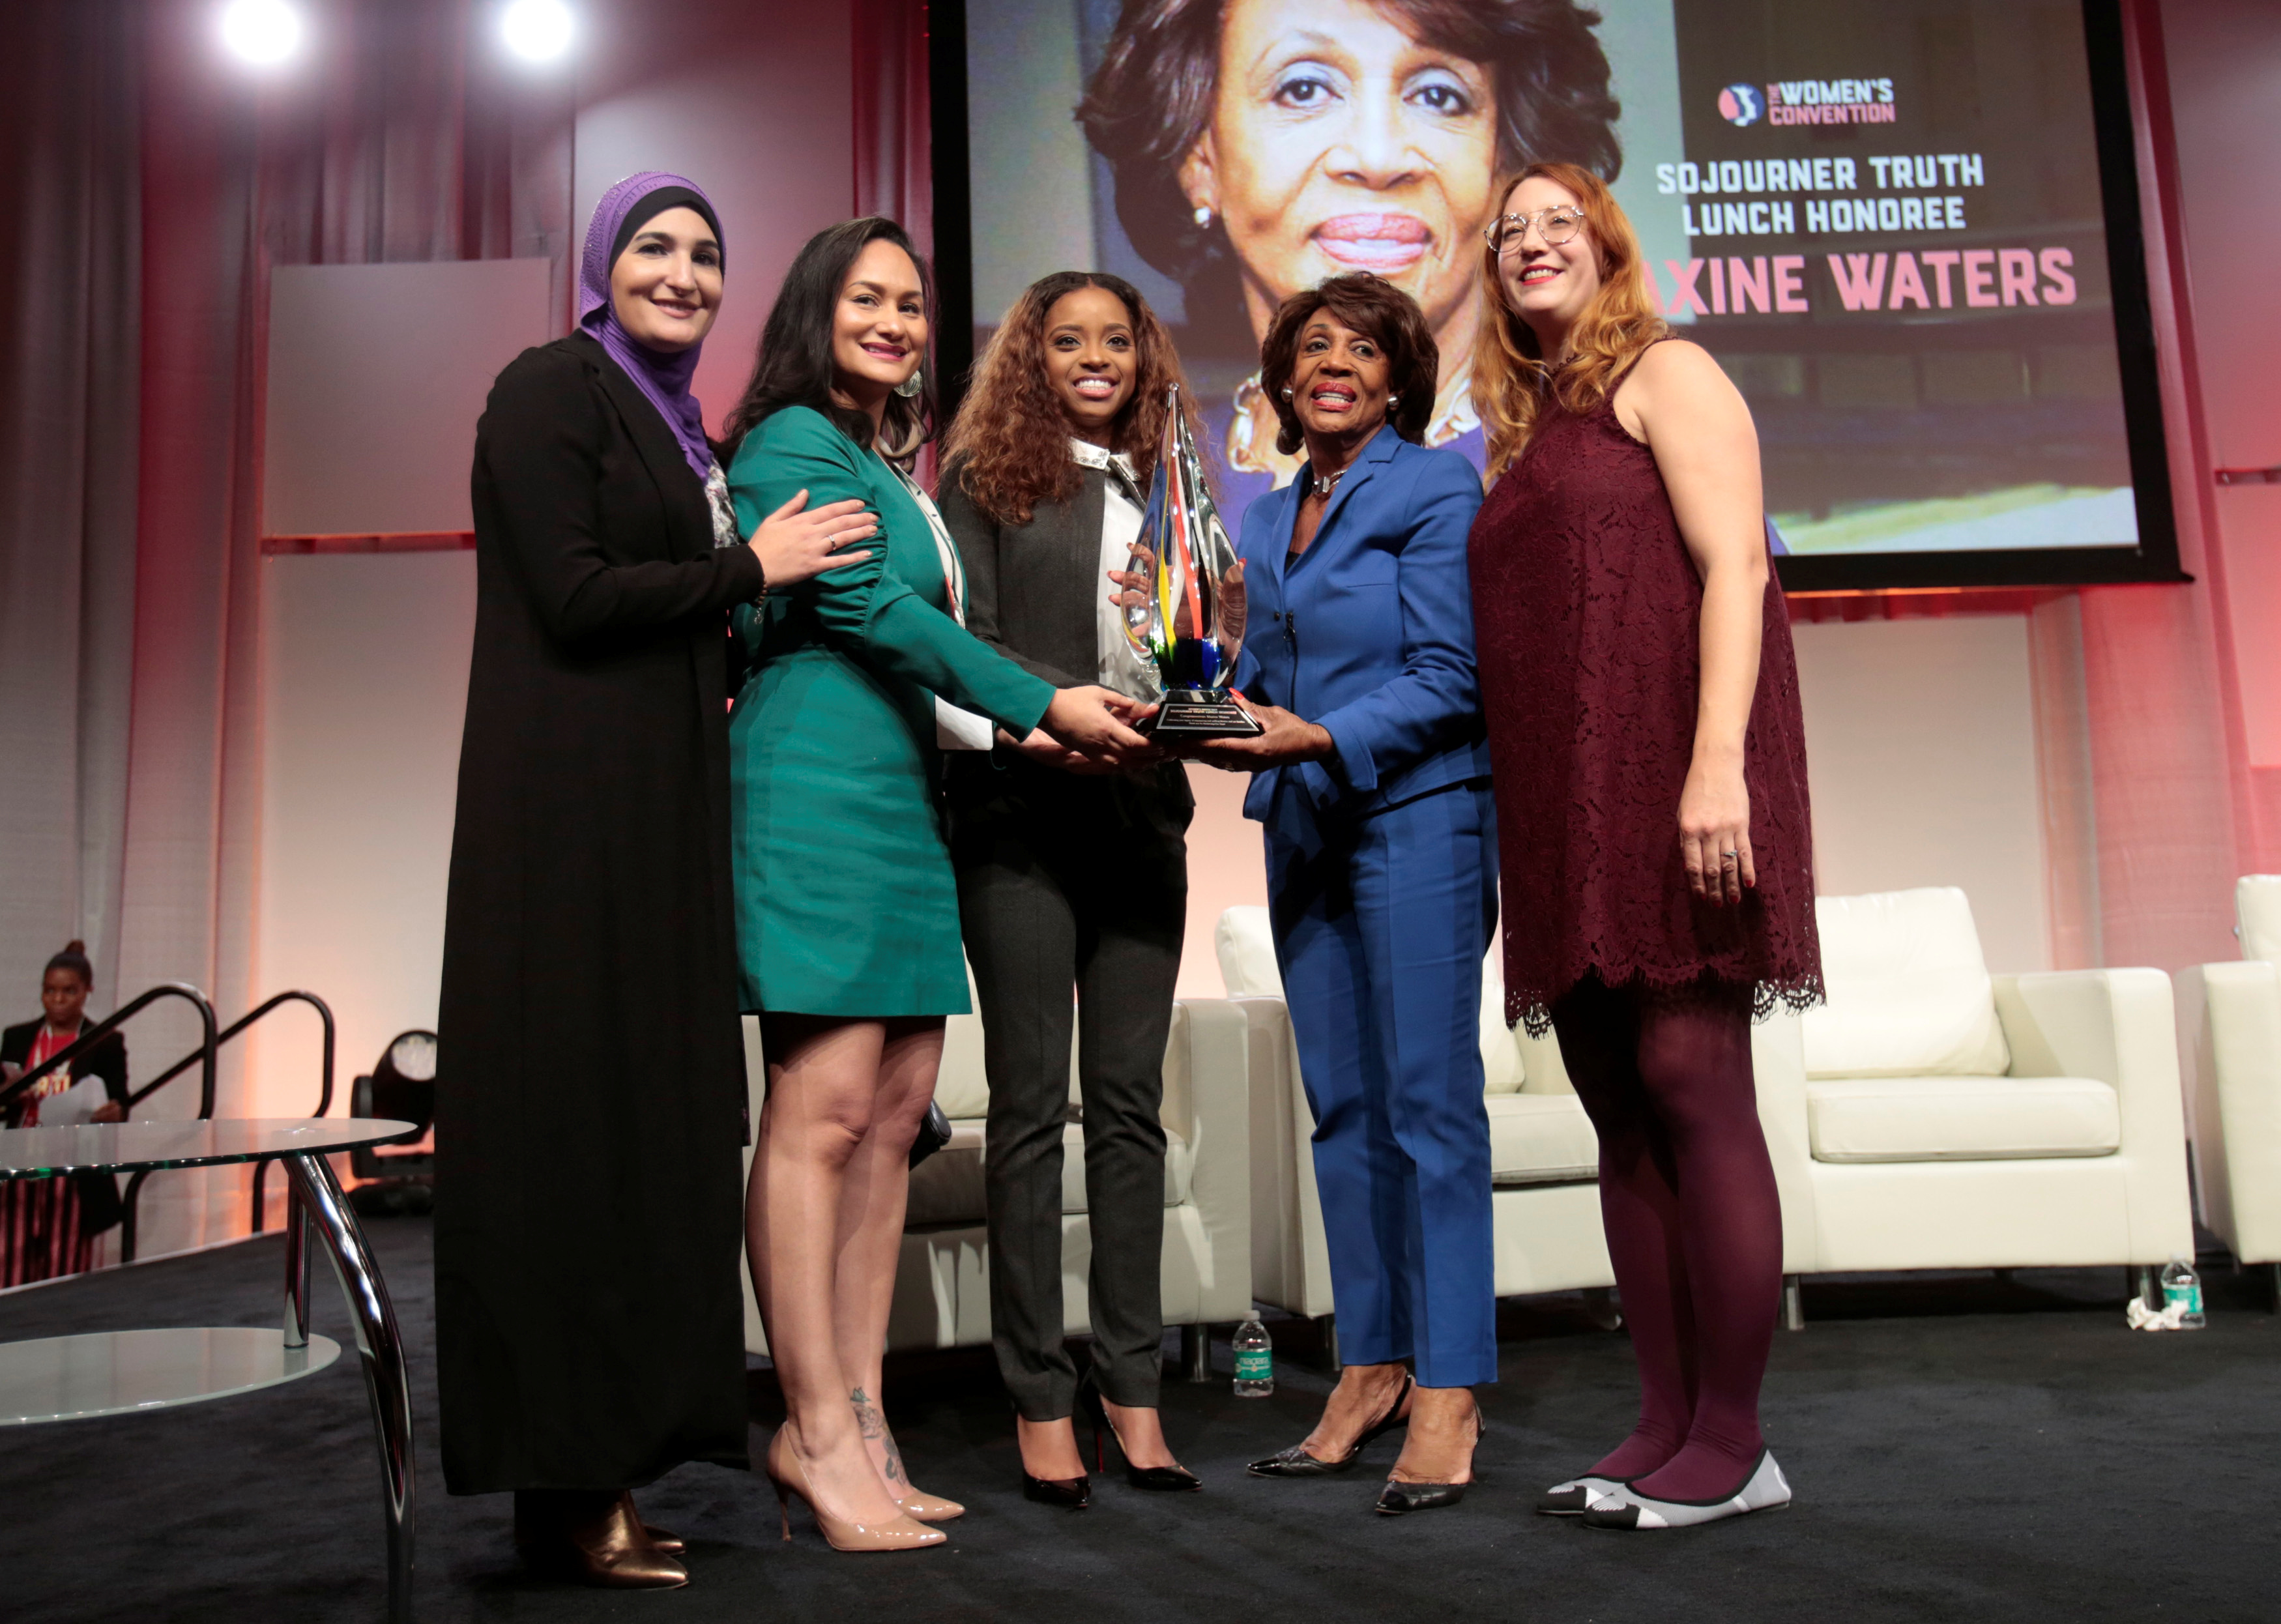 Democratic Rep. Maxine Waters poses with National Co-Chairs.Women's March Linda Sarsour, Carmen Perez, Tamika Mallory and Bob Bland following the Sojourner Truth Luncheon during the three-day Women's Convention at Cobo Center in Detroit, Michigan, U.S., October 28, 2017. REUTERS/Rebecca Cook